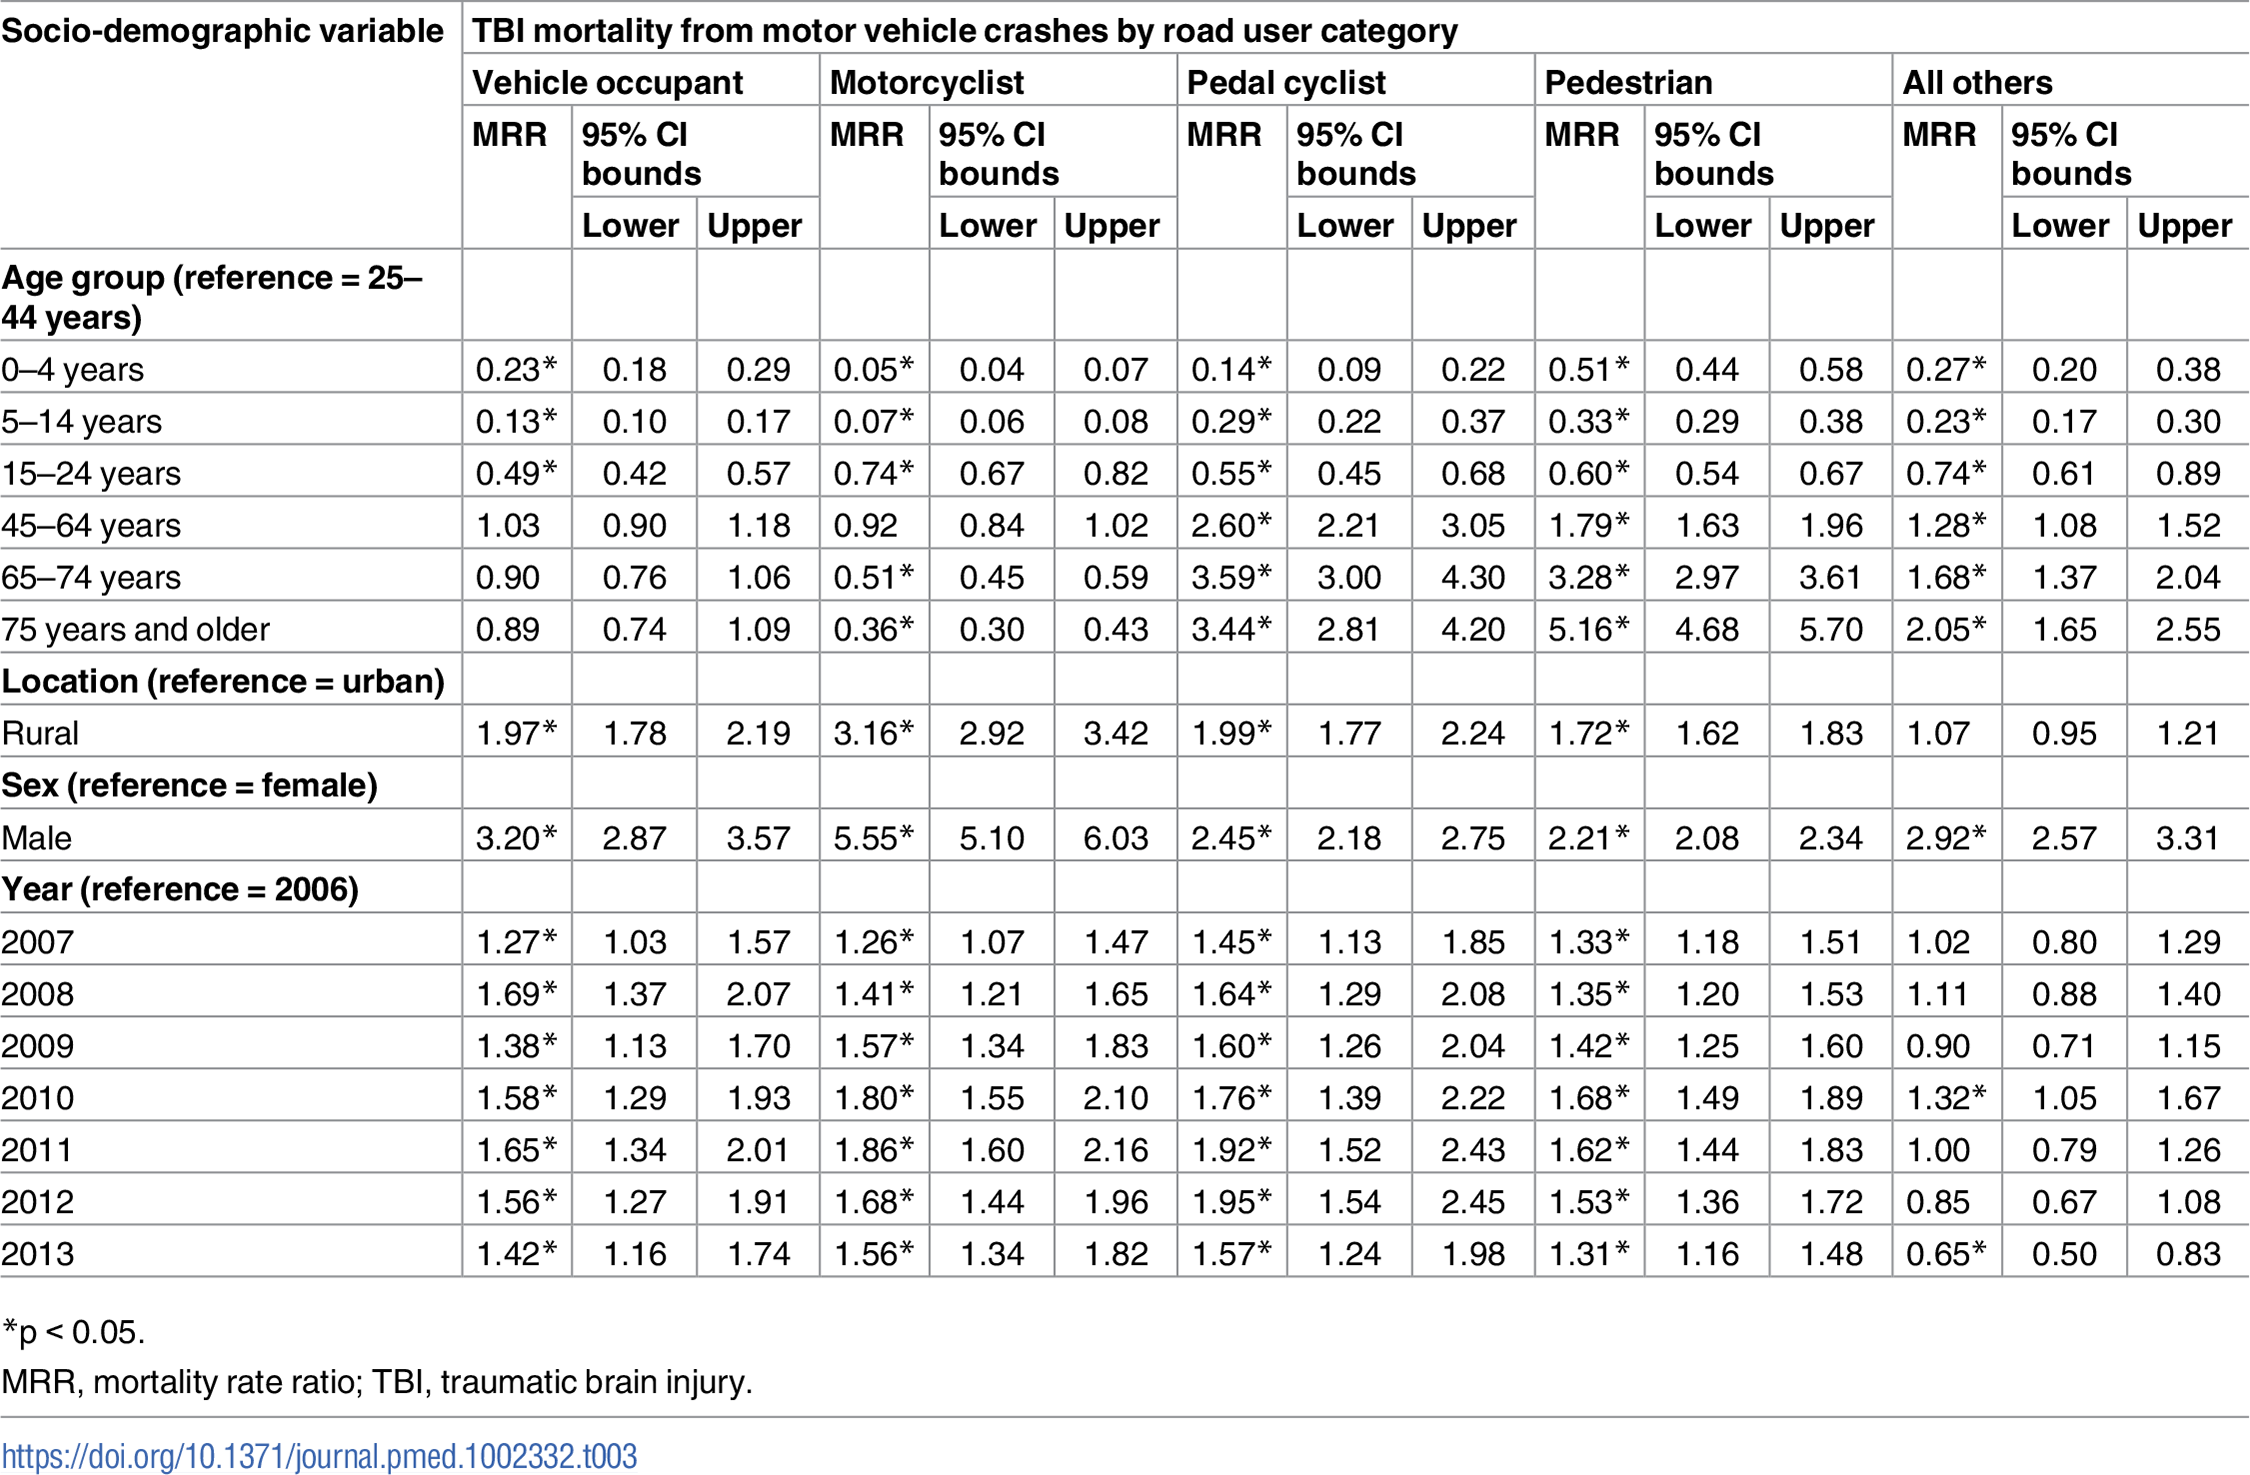 Associations of traumatic brain injury mortality from motor vehicle crashes with socio-demographic variables from multivariate negative binomial regression (China, 2006–2013).